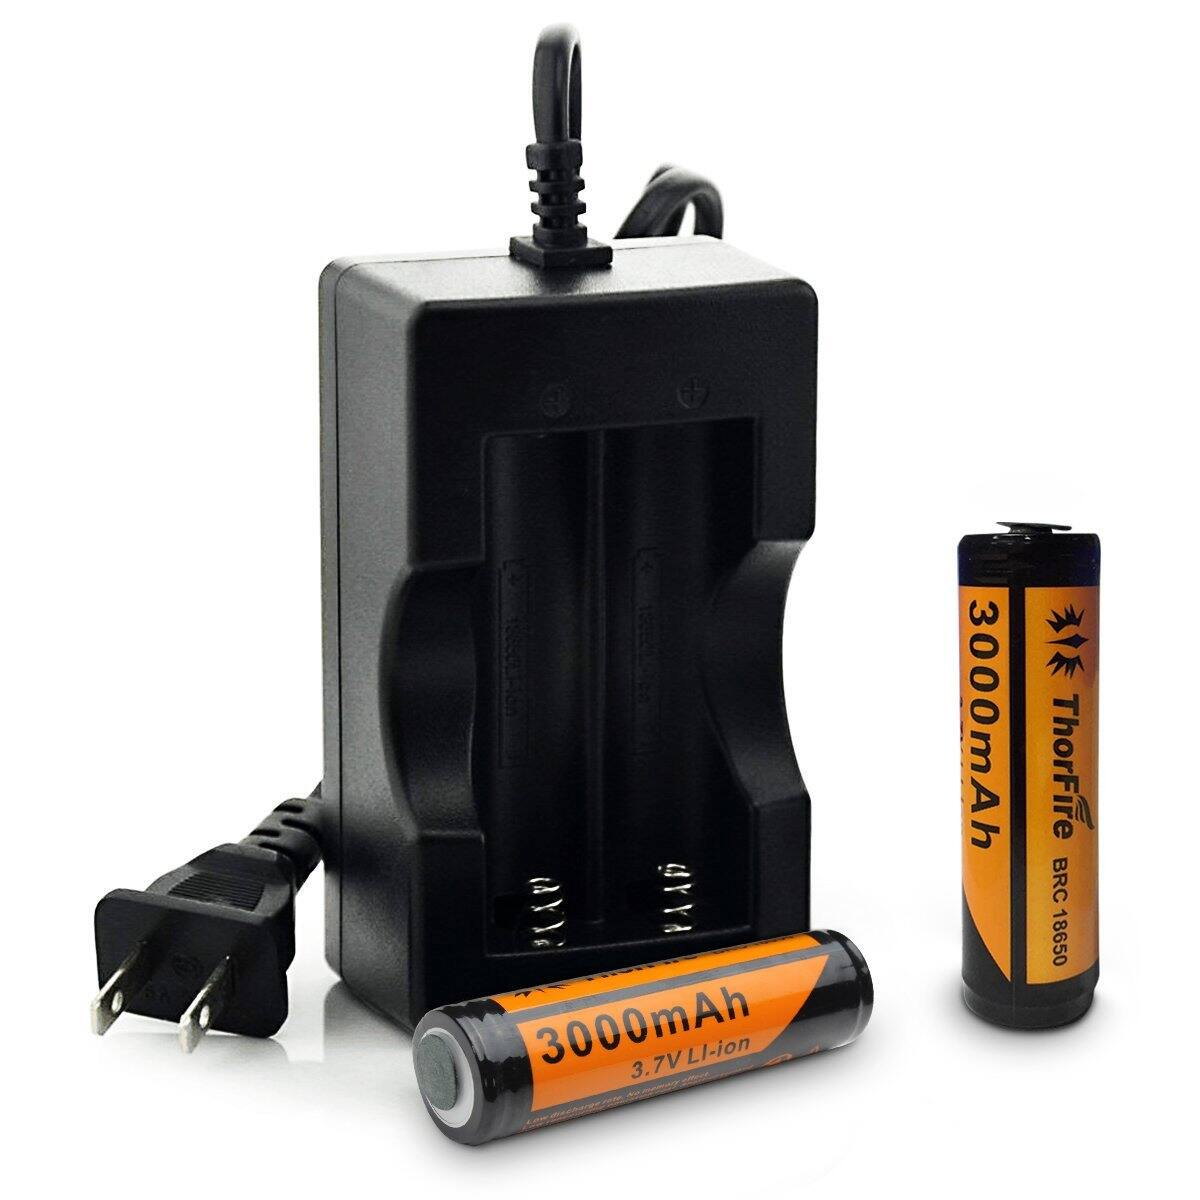 2-Pack ThorFire 18650 3.7V Li-ion Batteries & Charger  $16